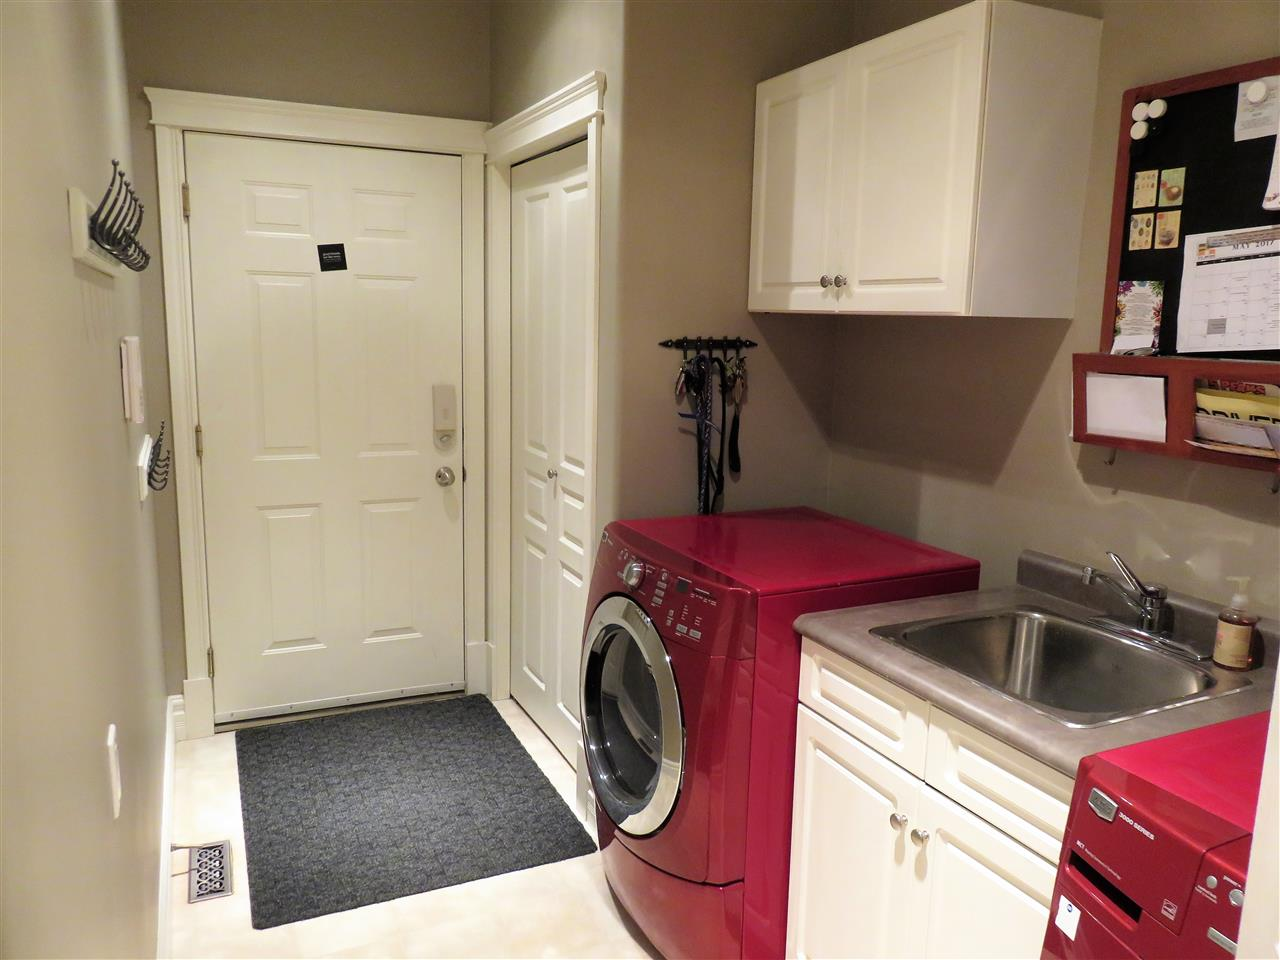 View of the main floor Laundry Room!! Note the Soaker Sink too!